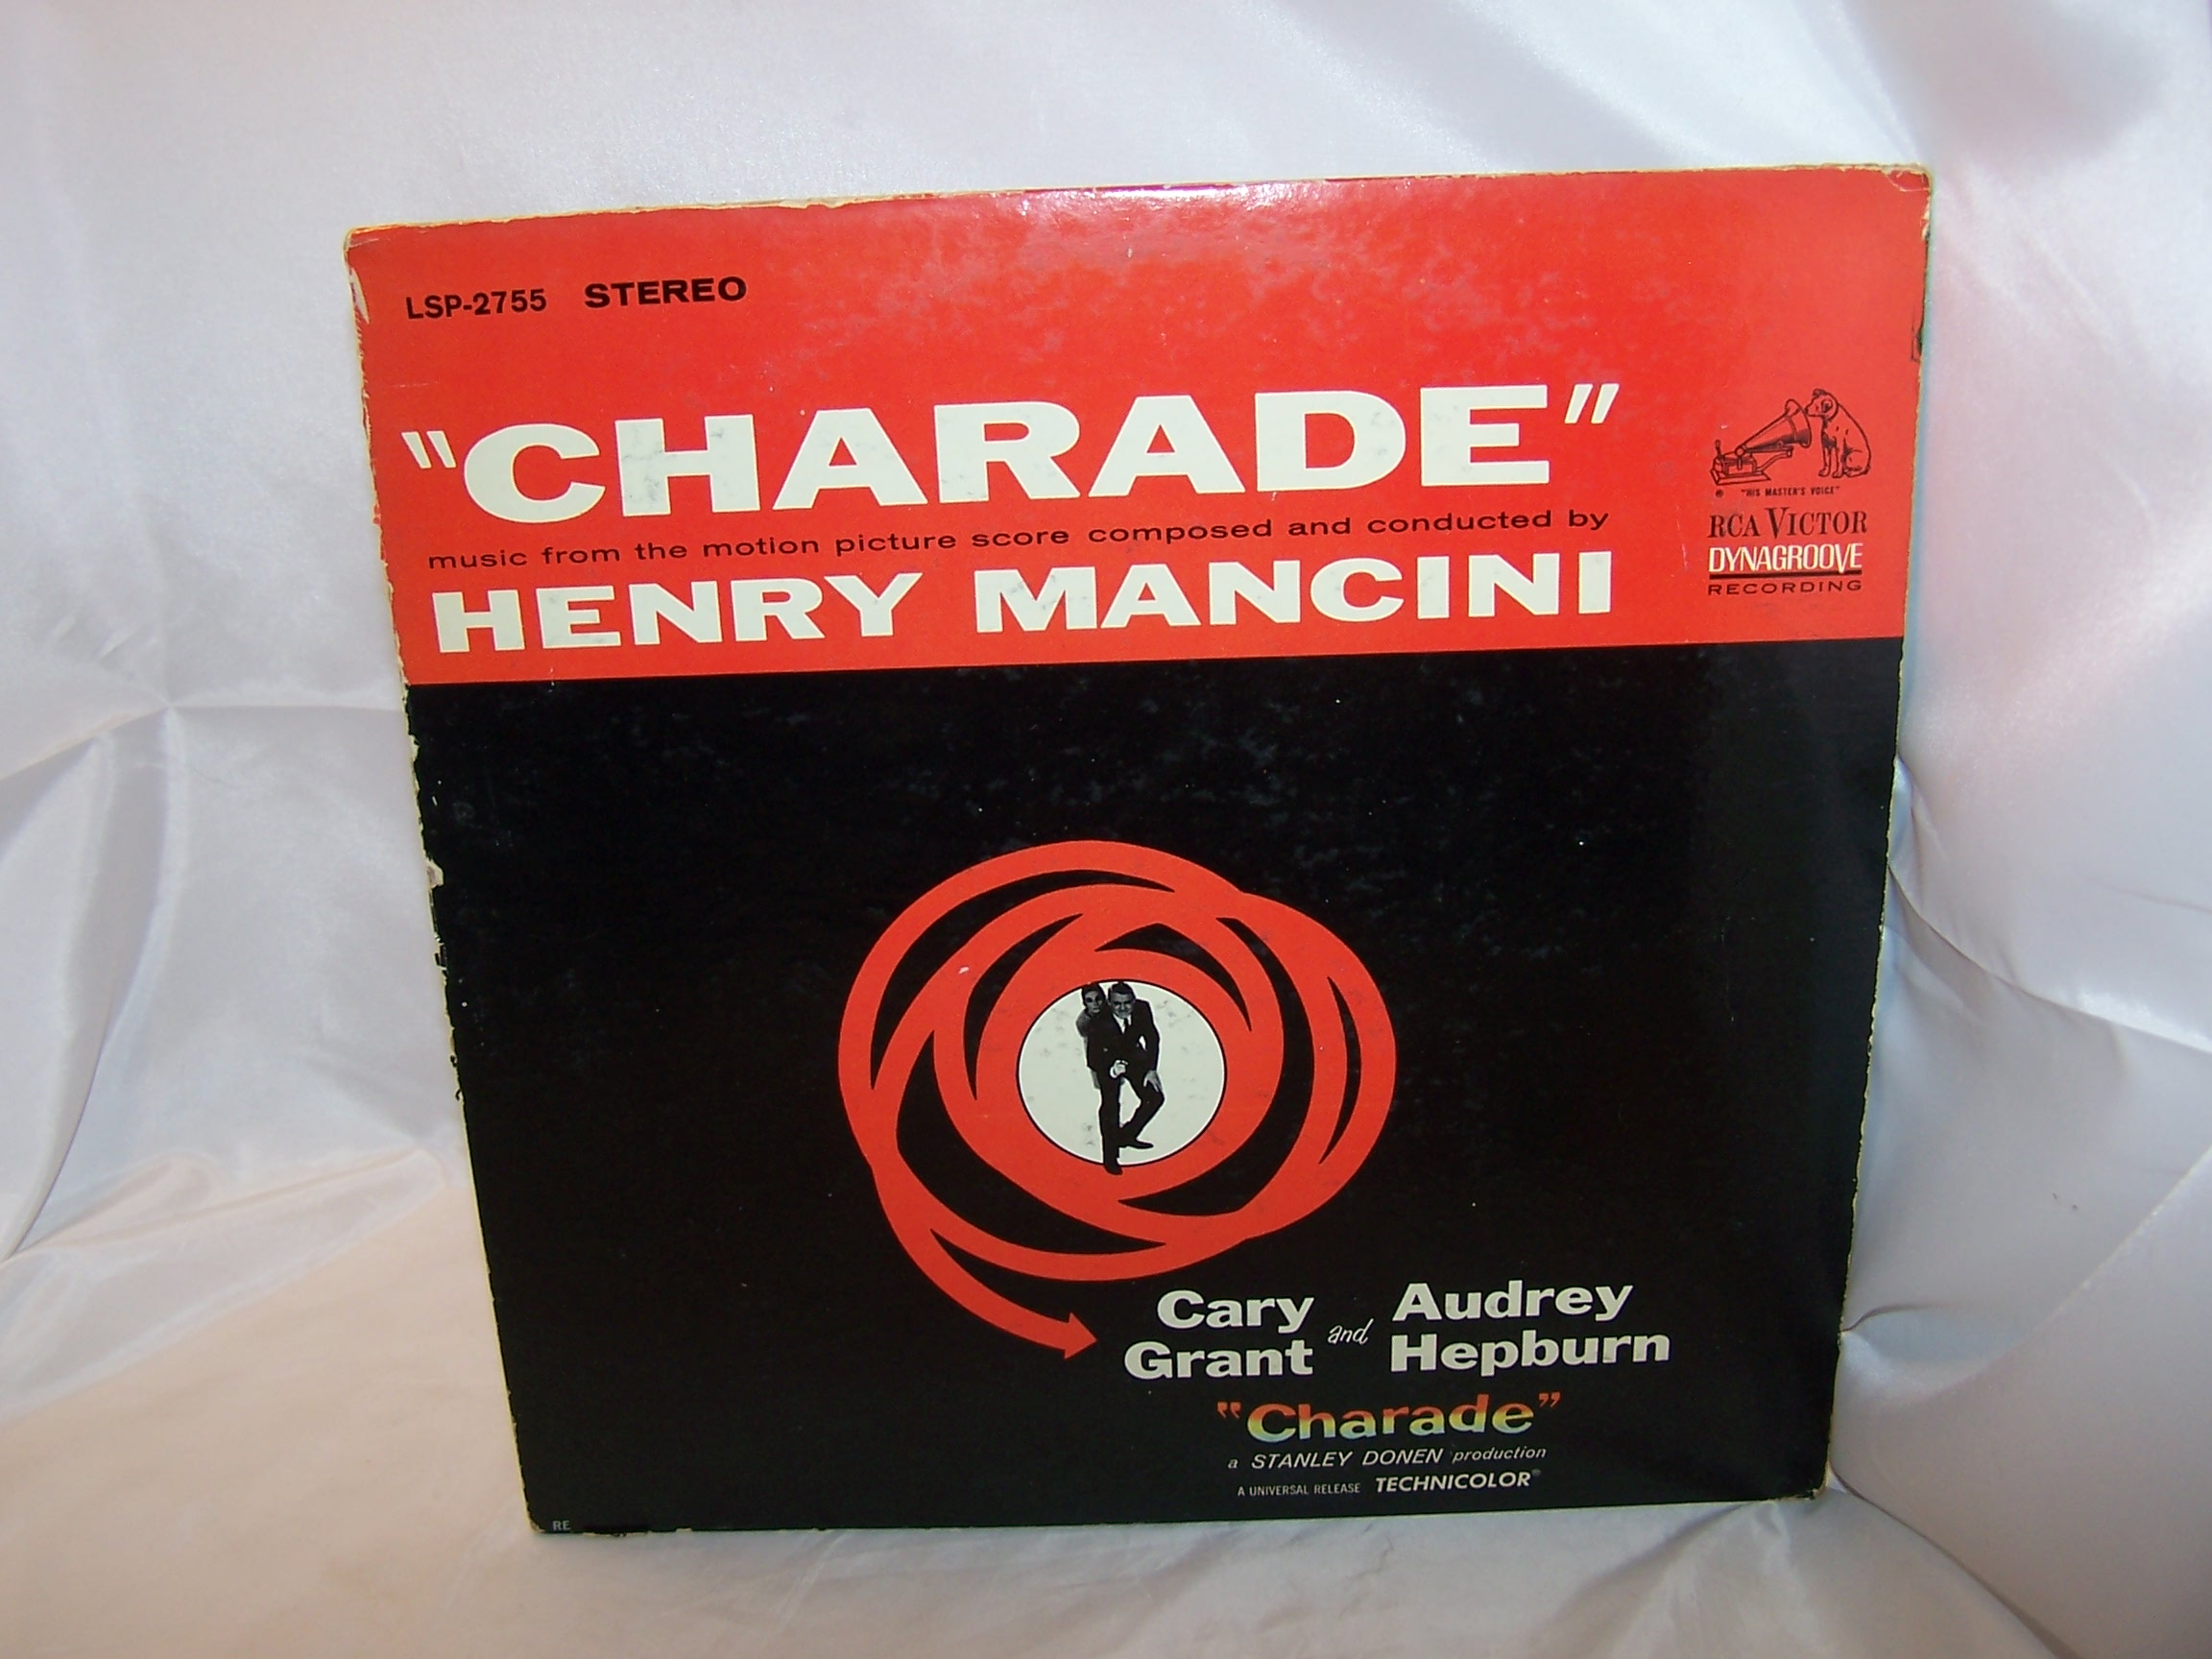 Henry Mancini, Charade, from the Movie Score, Cary Grant, Audrey Hepburn, 1963